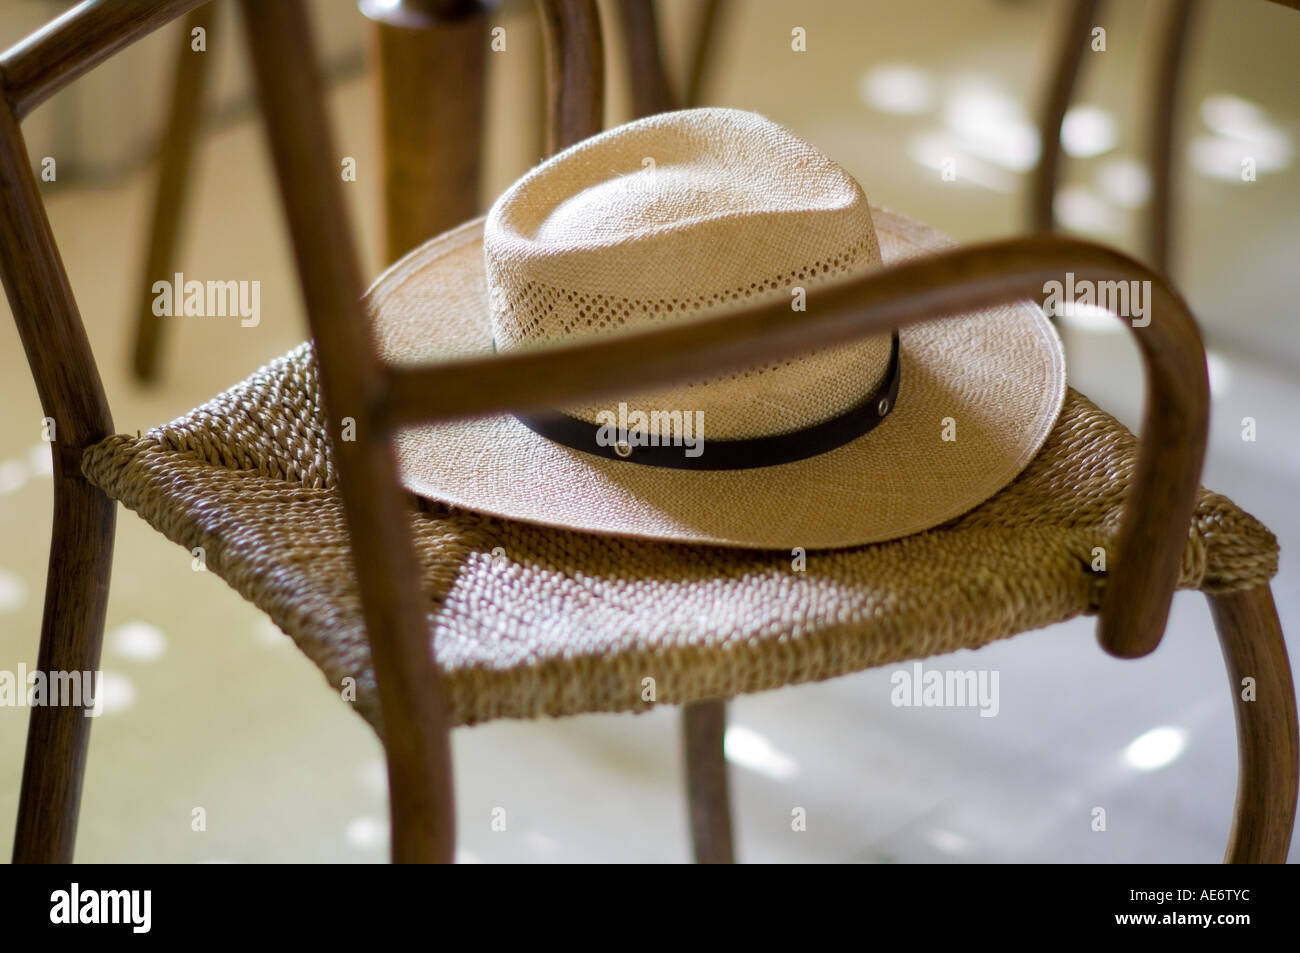 woven chair stock photos woven chair stock images alamy rh alamy com Plywood Chair DIY Bent Plywood Chair